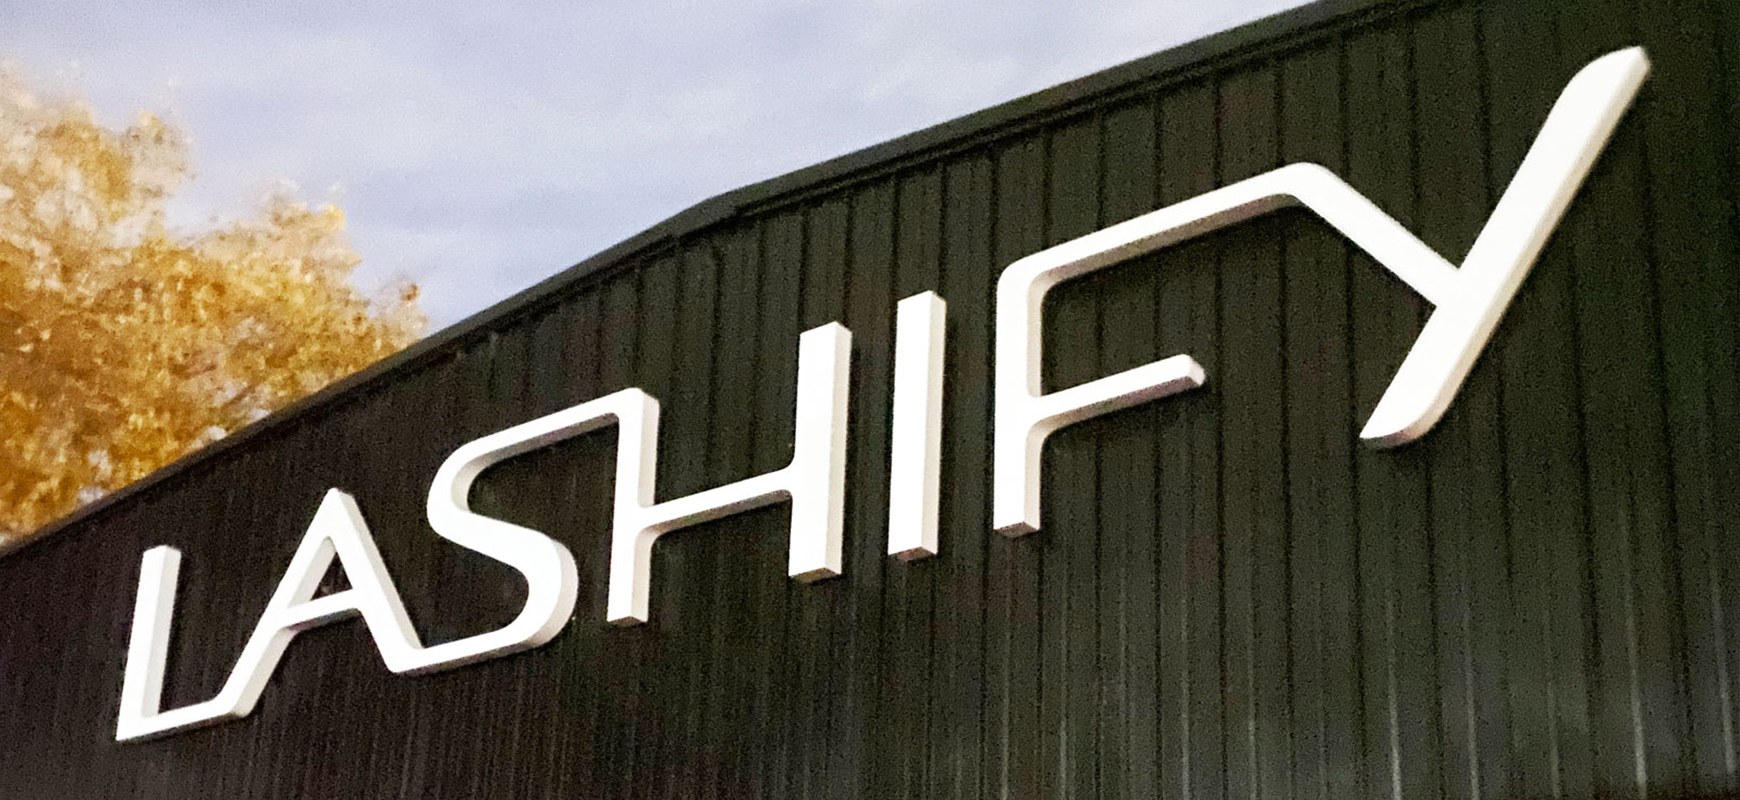 Lashify outdoor 3d sign with brand name channel letters made of acrylic and aluminum